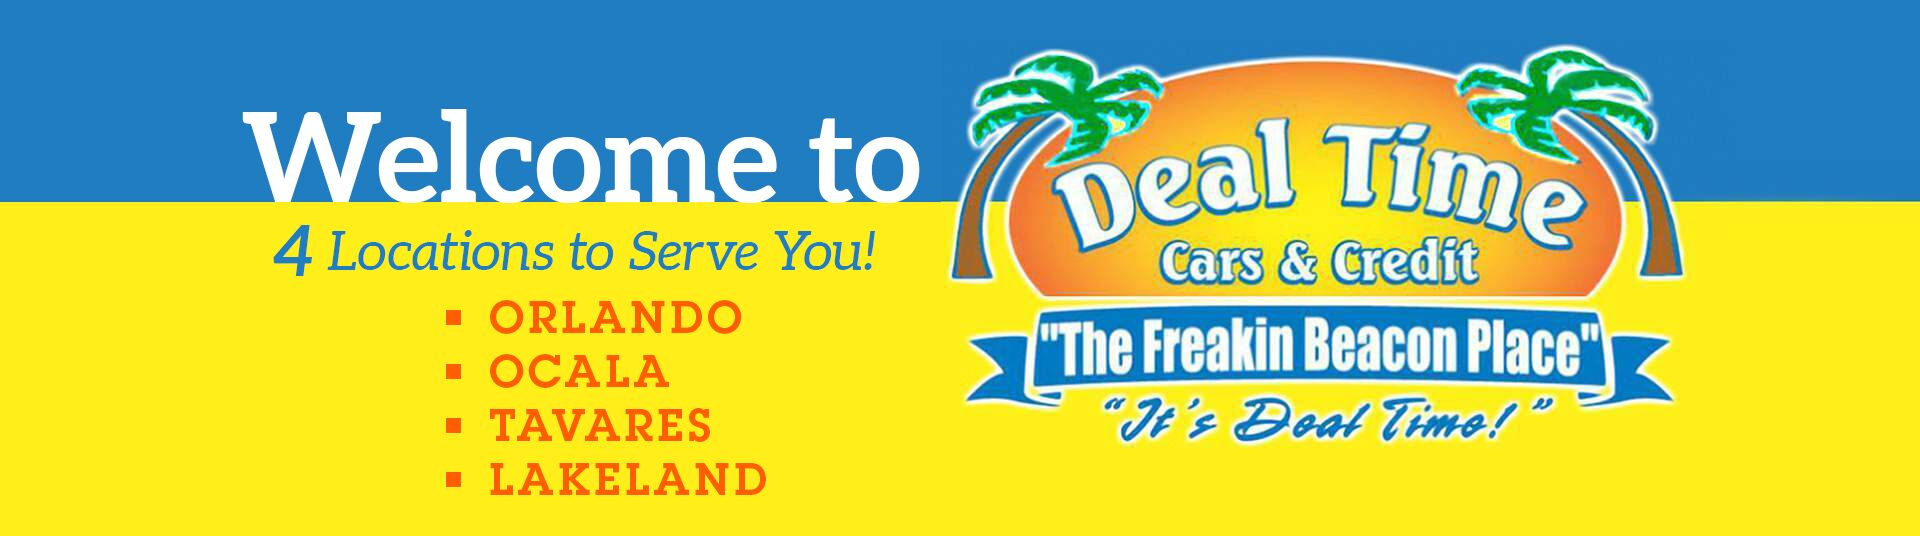 Deal Time Cars & Credit